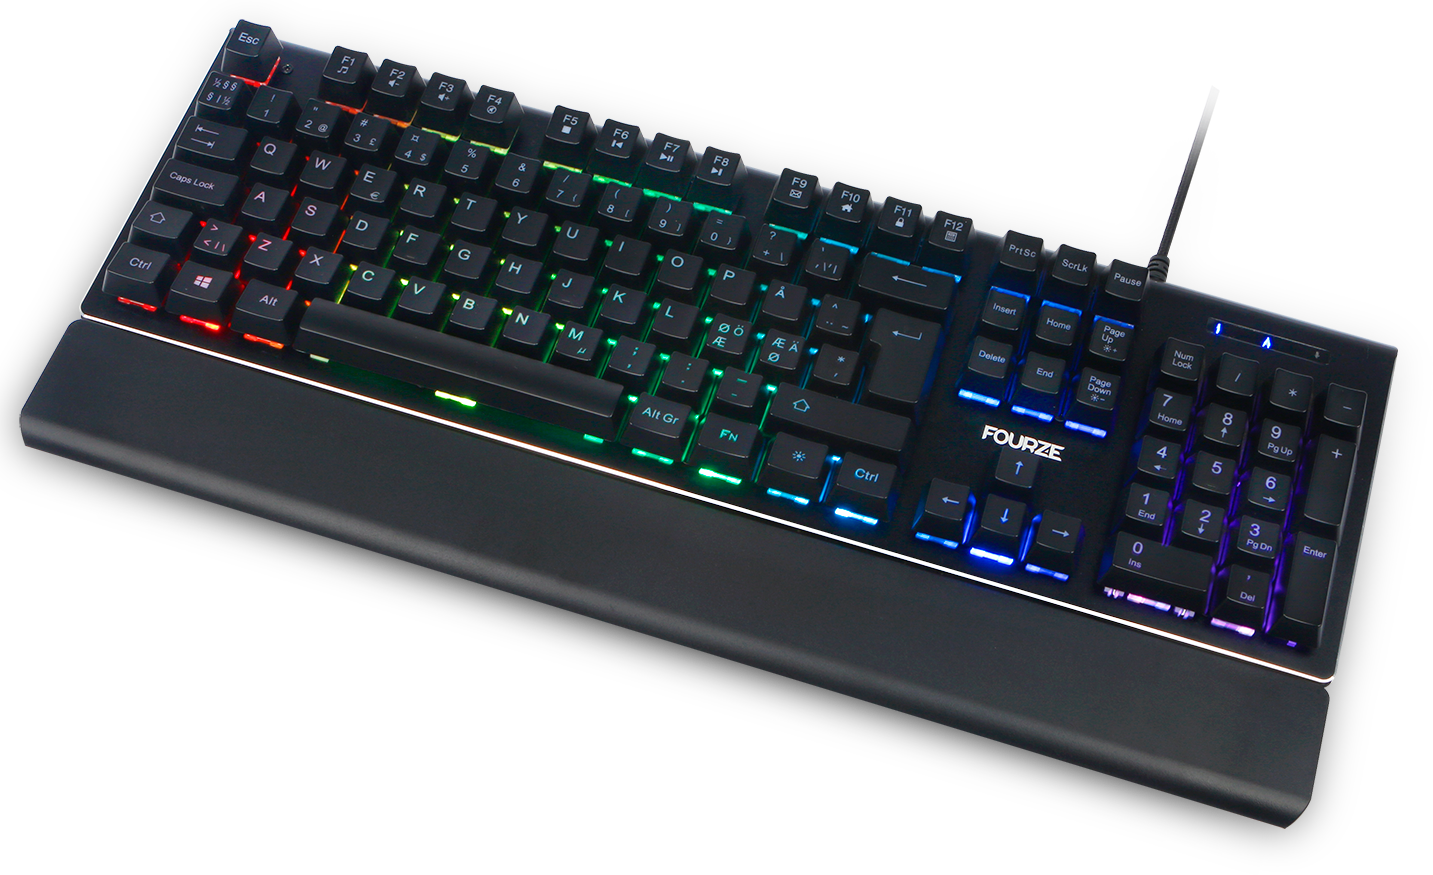 FOURZE GK100 X-switch semi-mechanical keyboard product image seen from the top with RGB